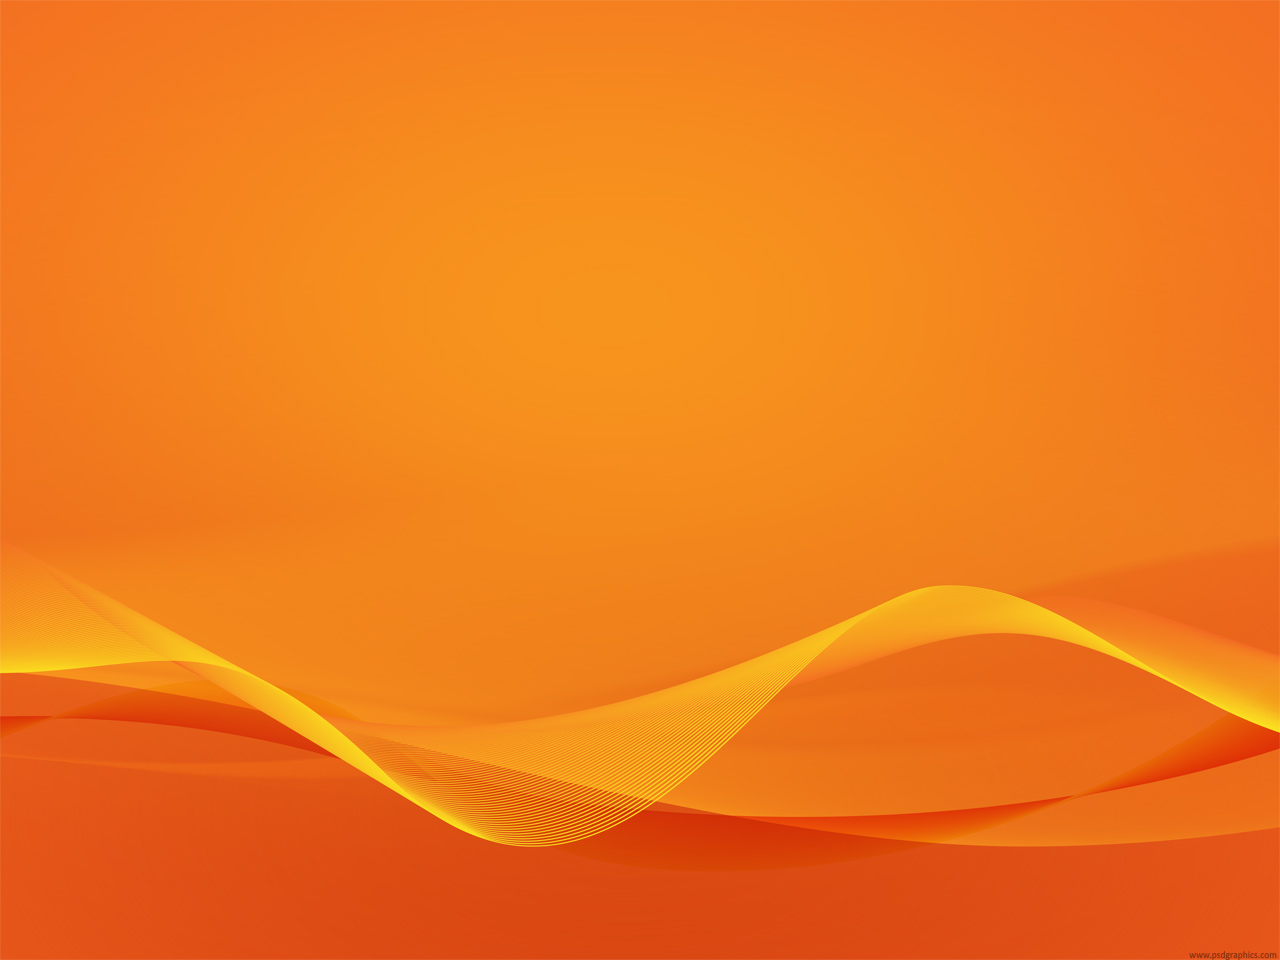 Medium size preview 1280x960px Wavy orange design 1280x960